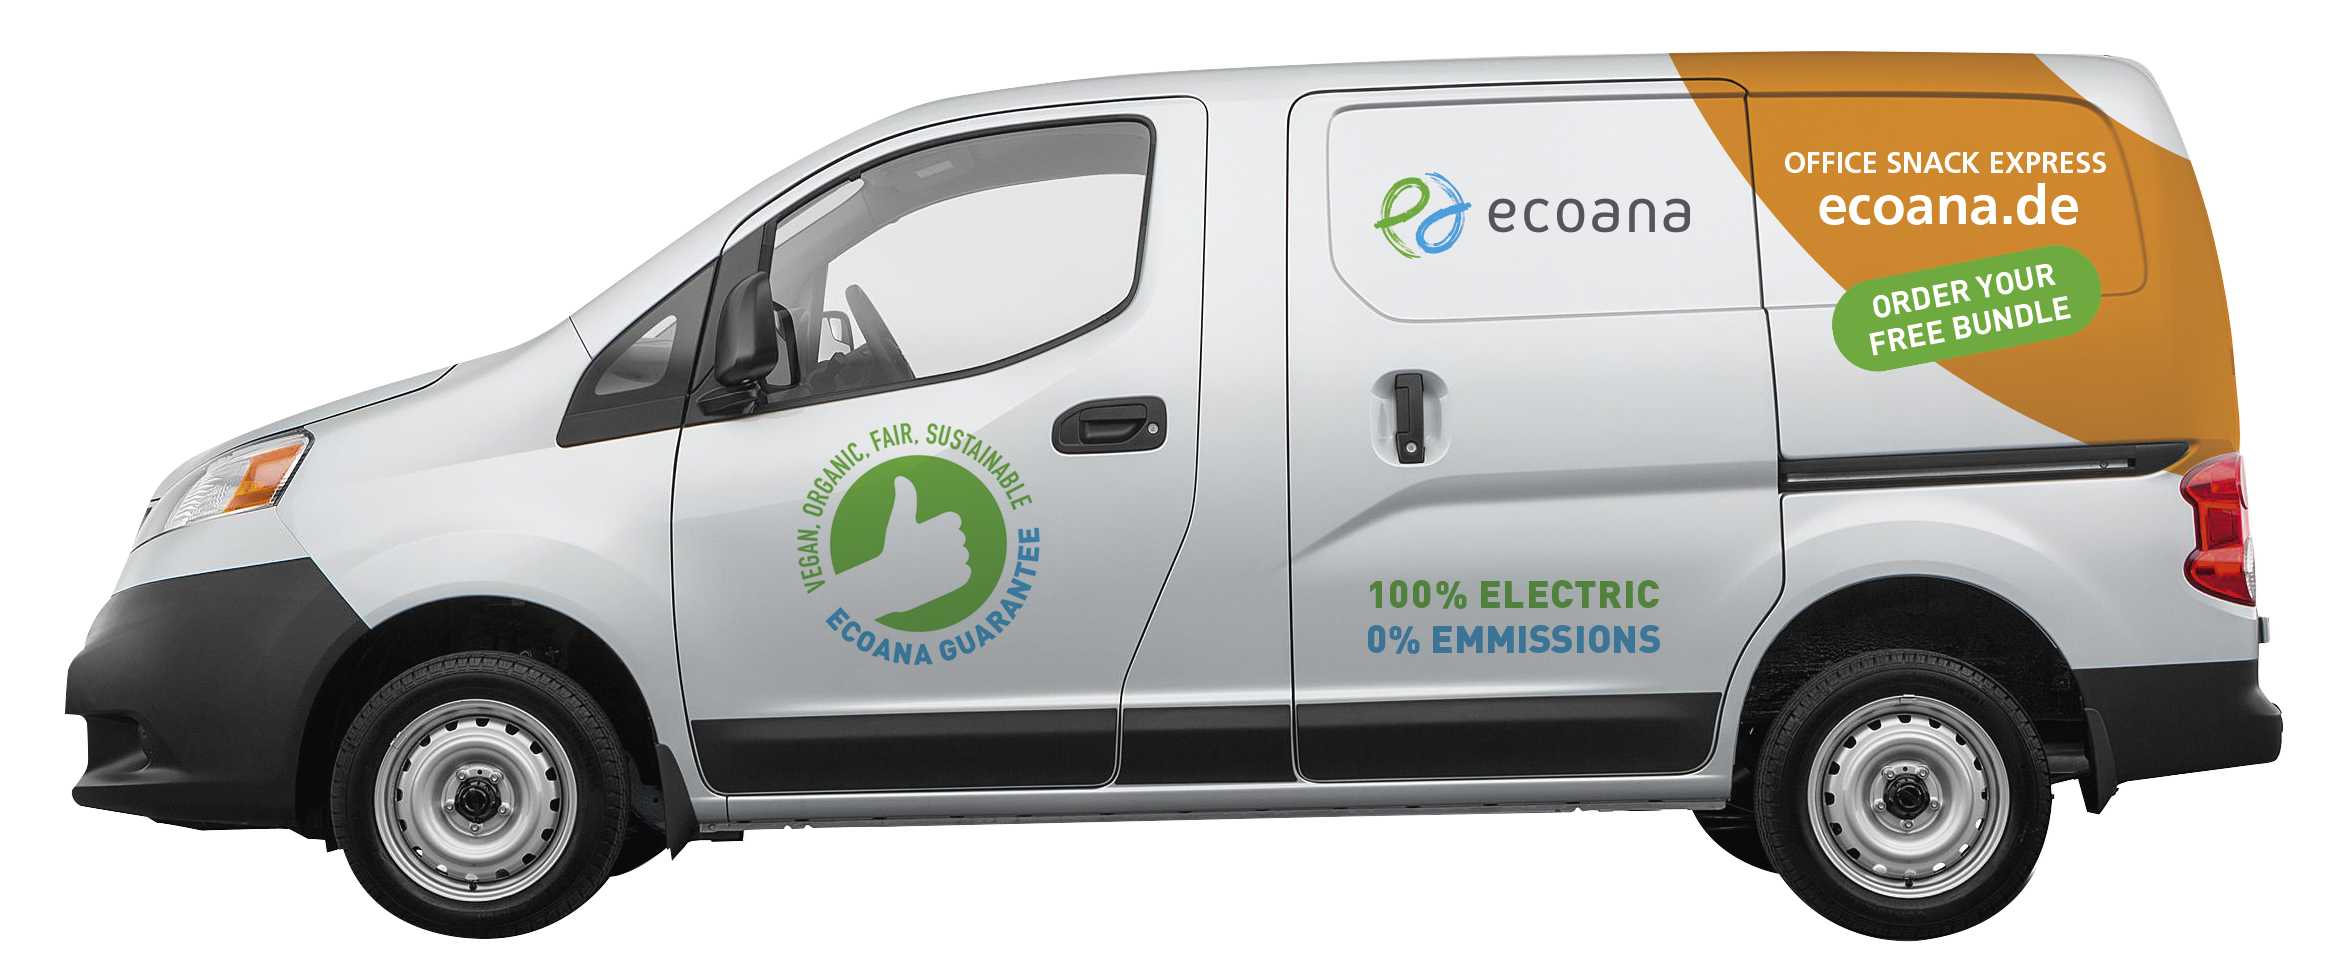 Ecoana electric car fleet changes everything - Now on the road in Germany!